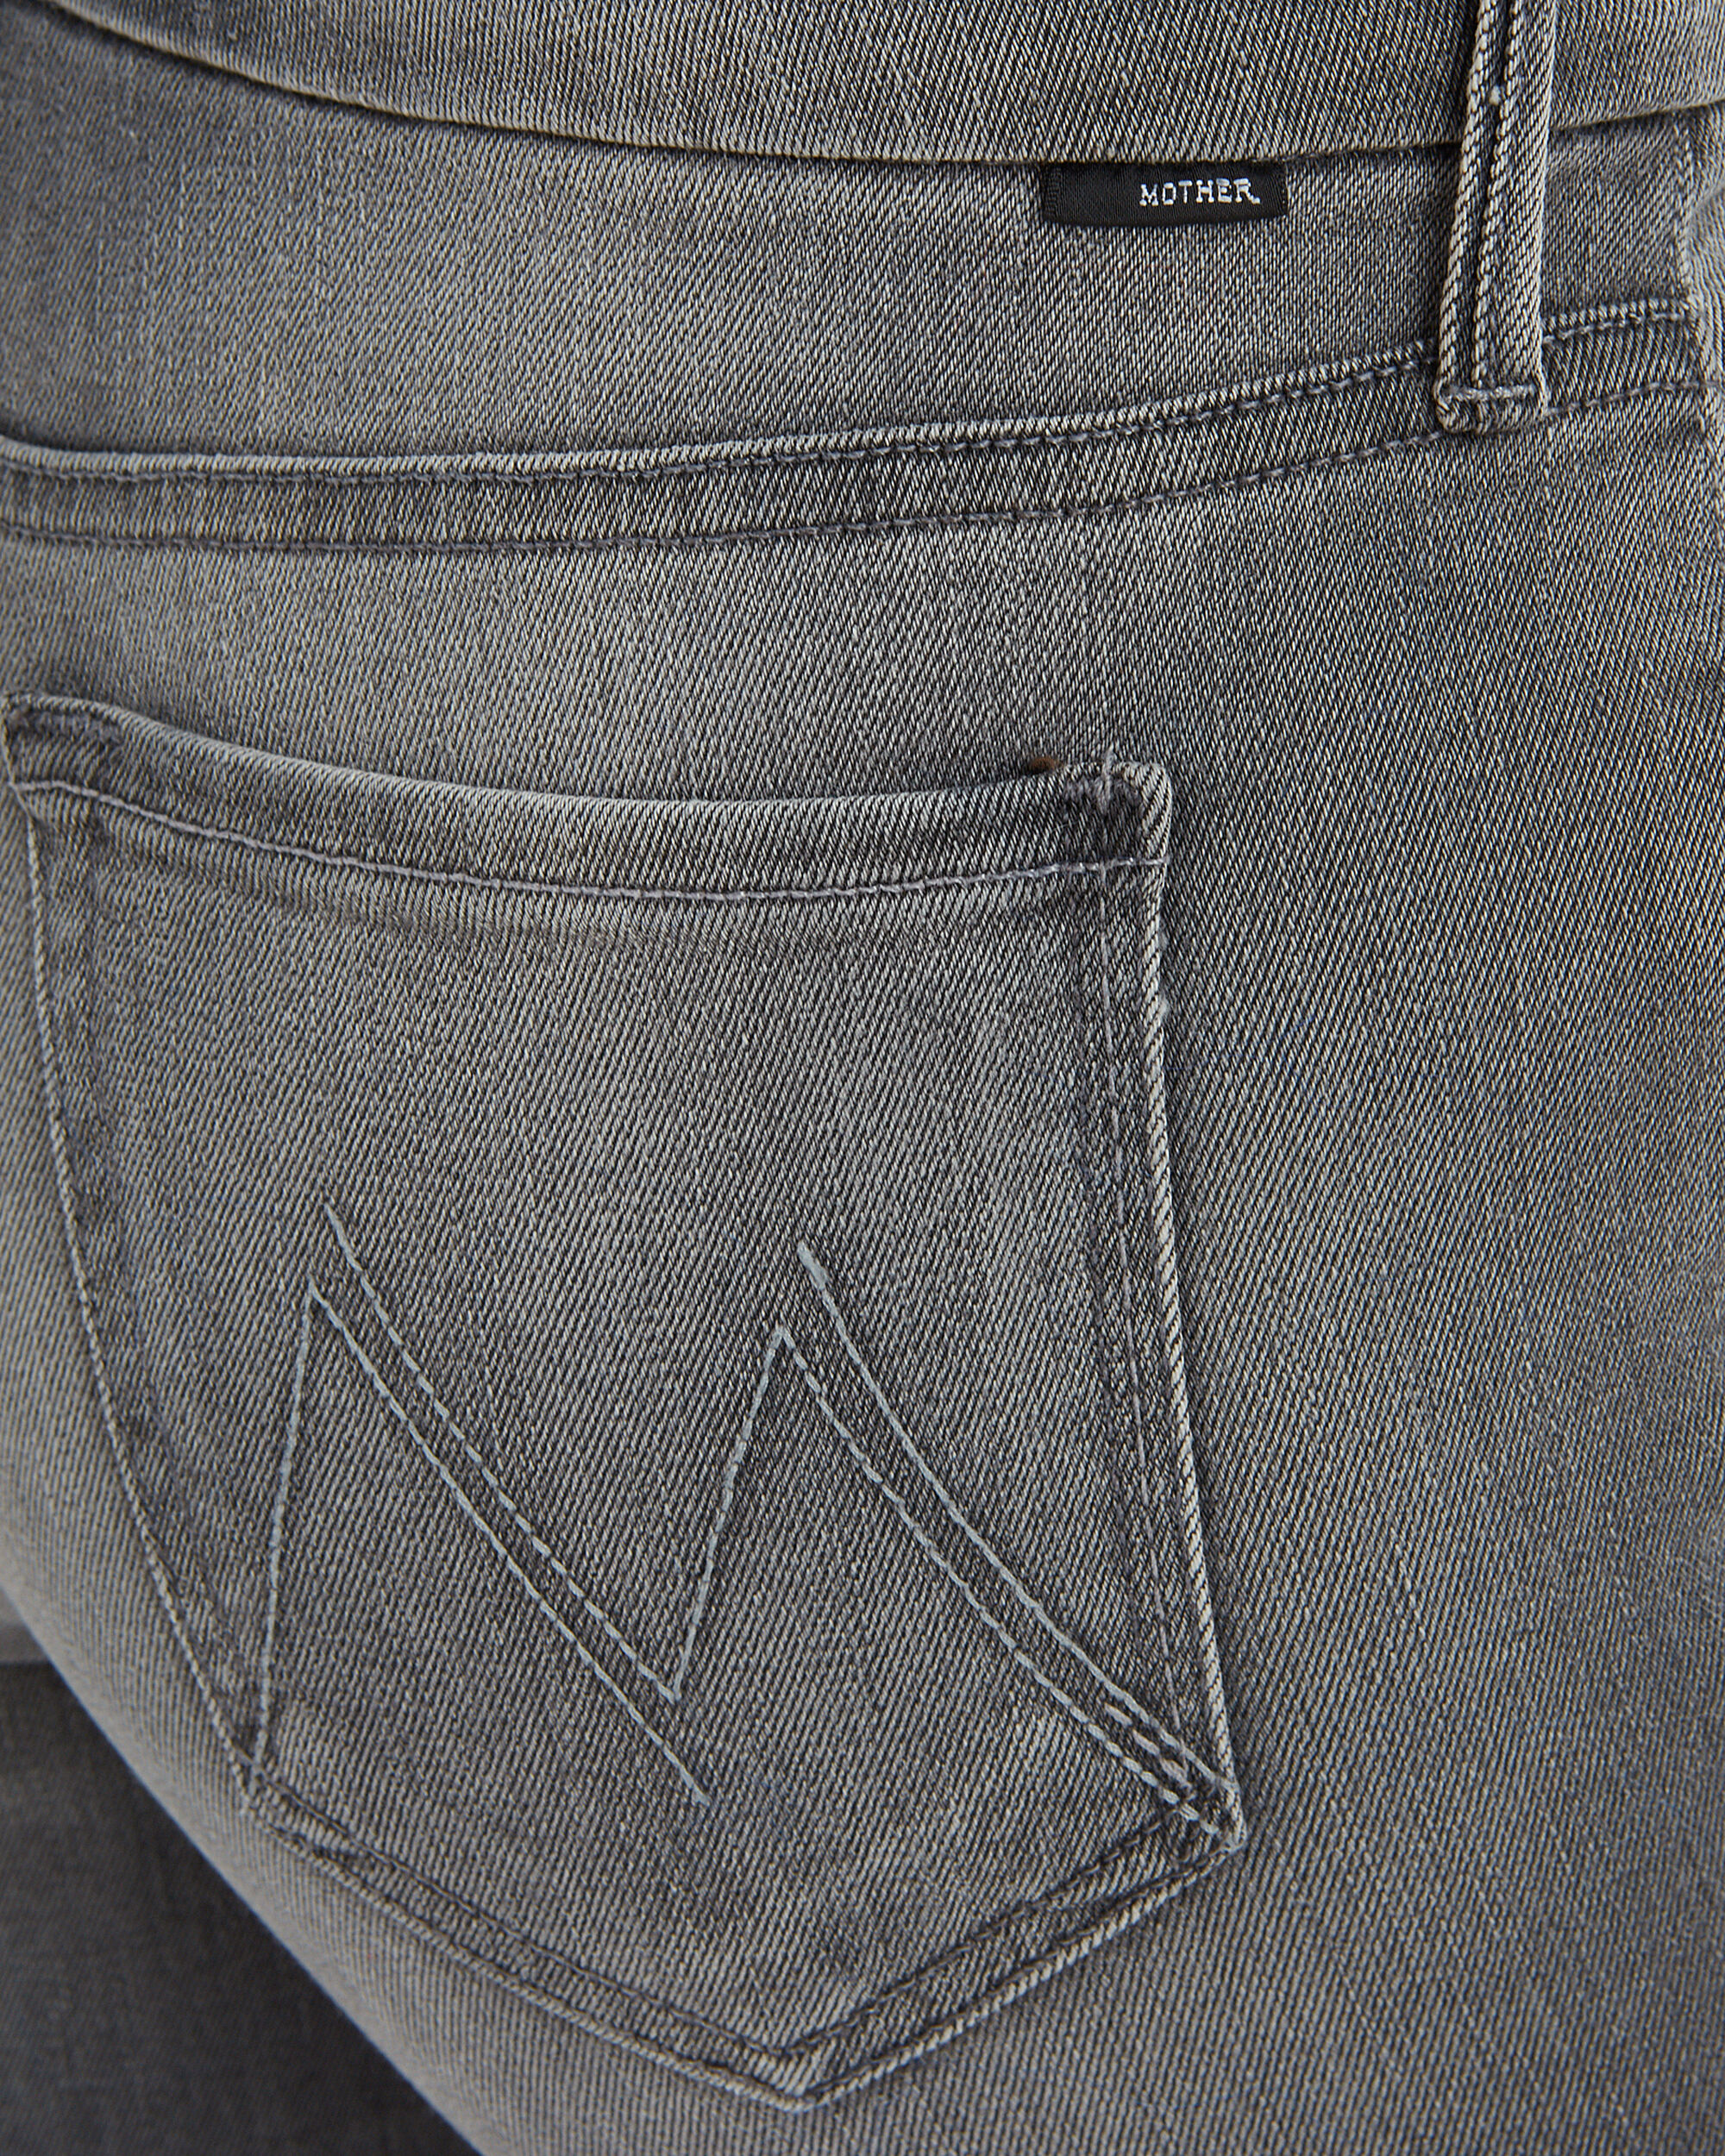 Looker Ankle Fray Supermoon Grey Jeans, GREY, hi-res